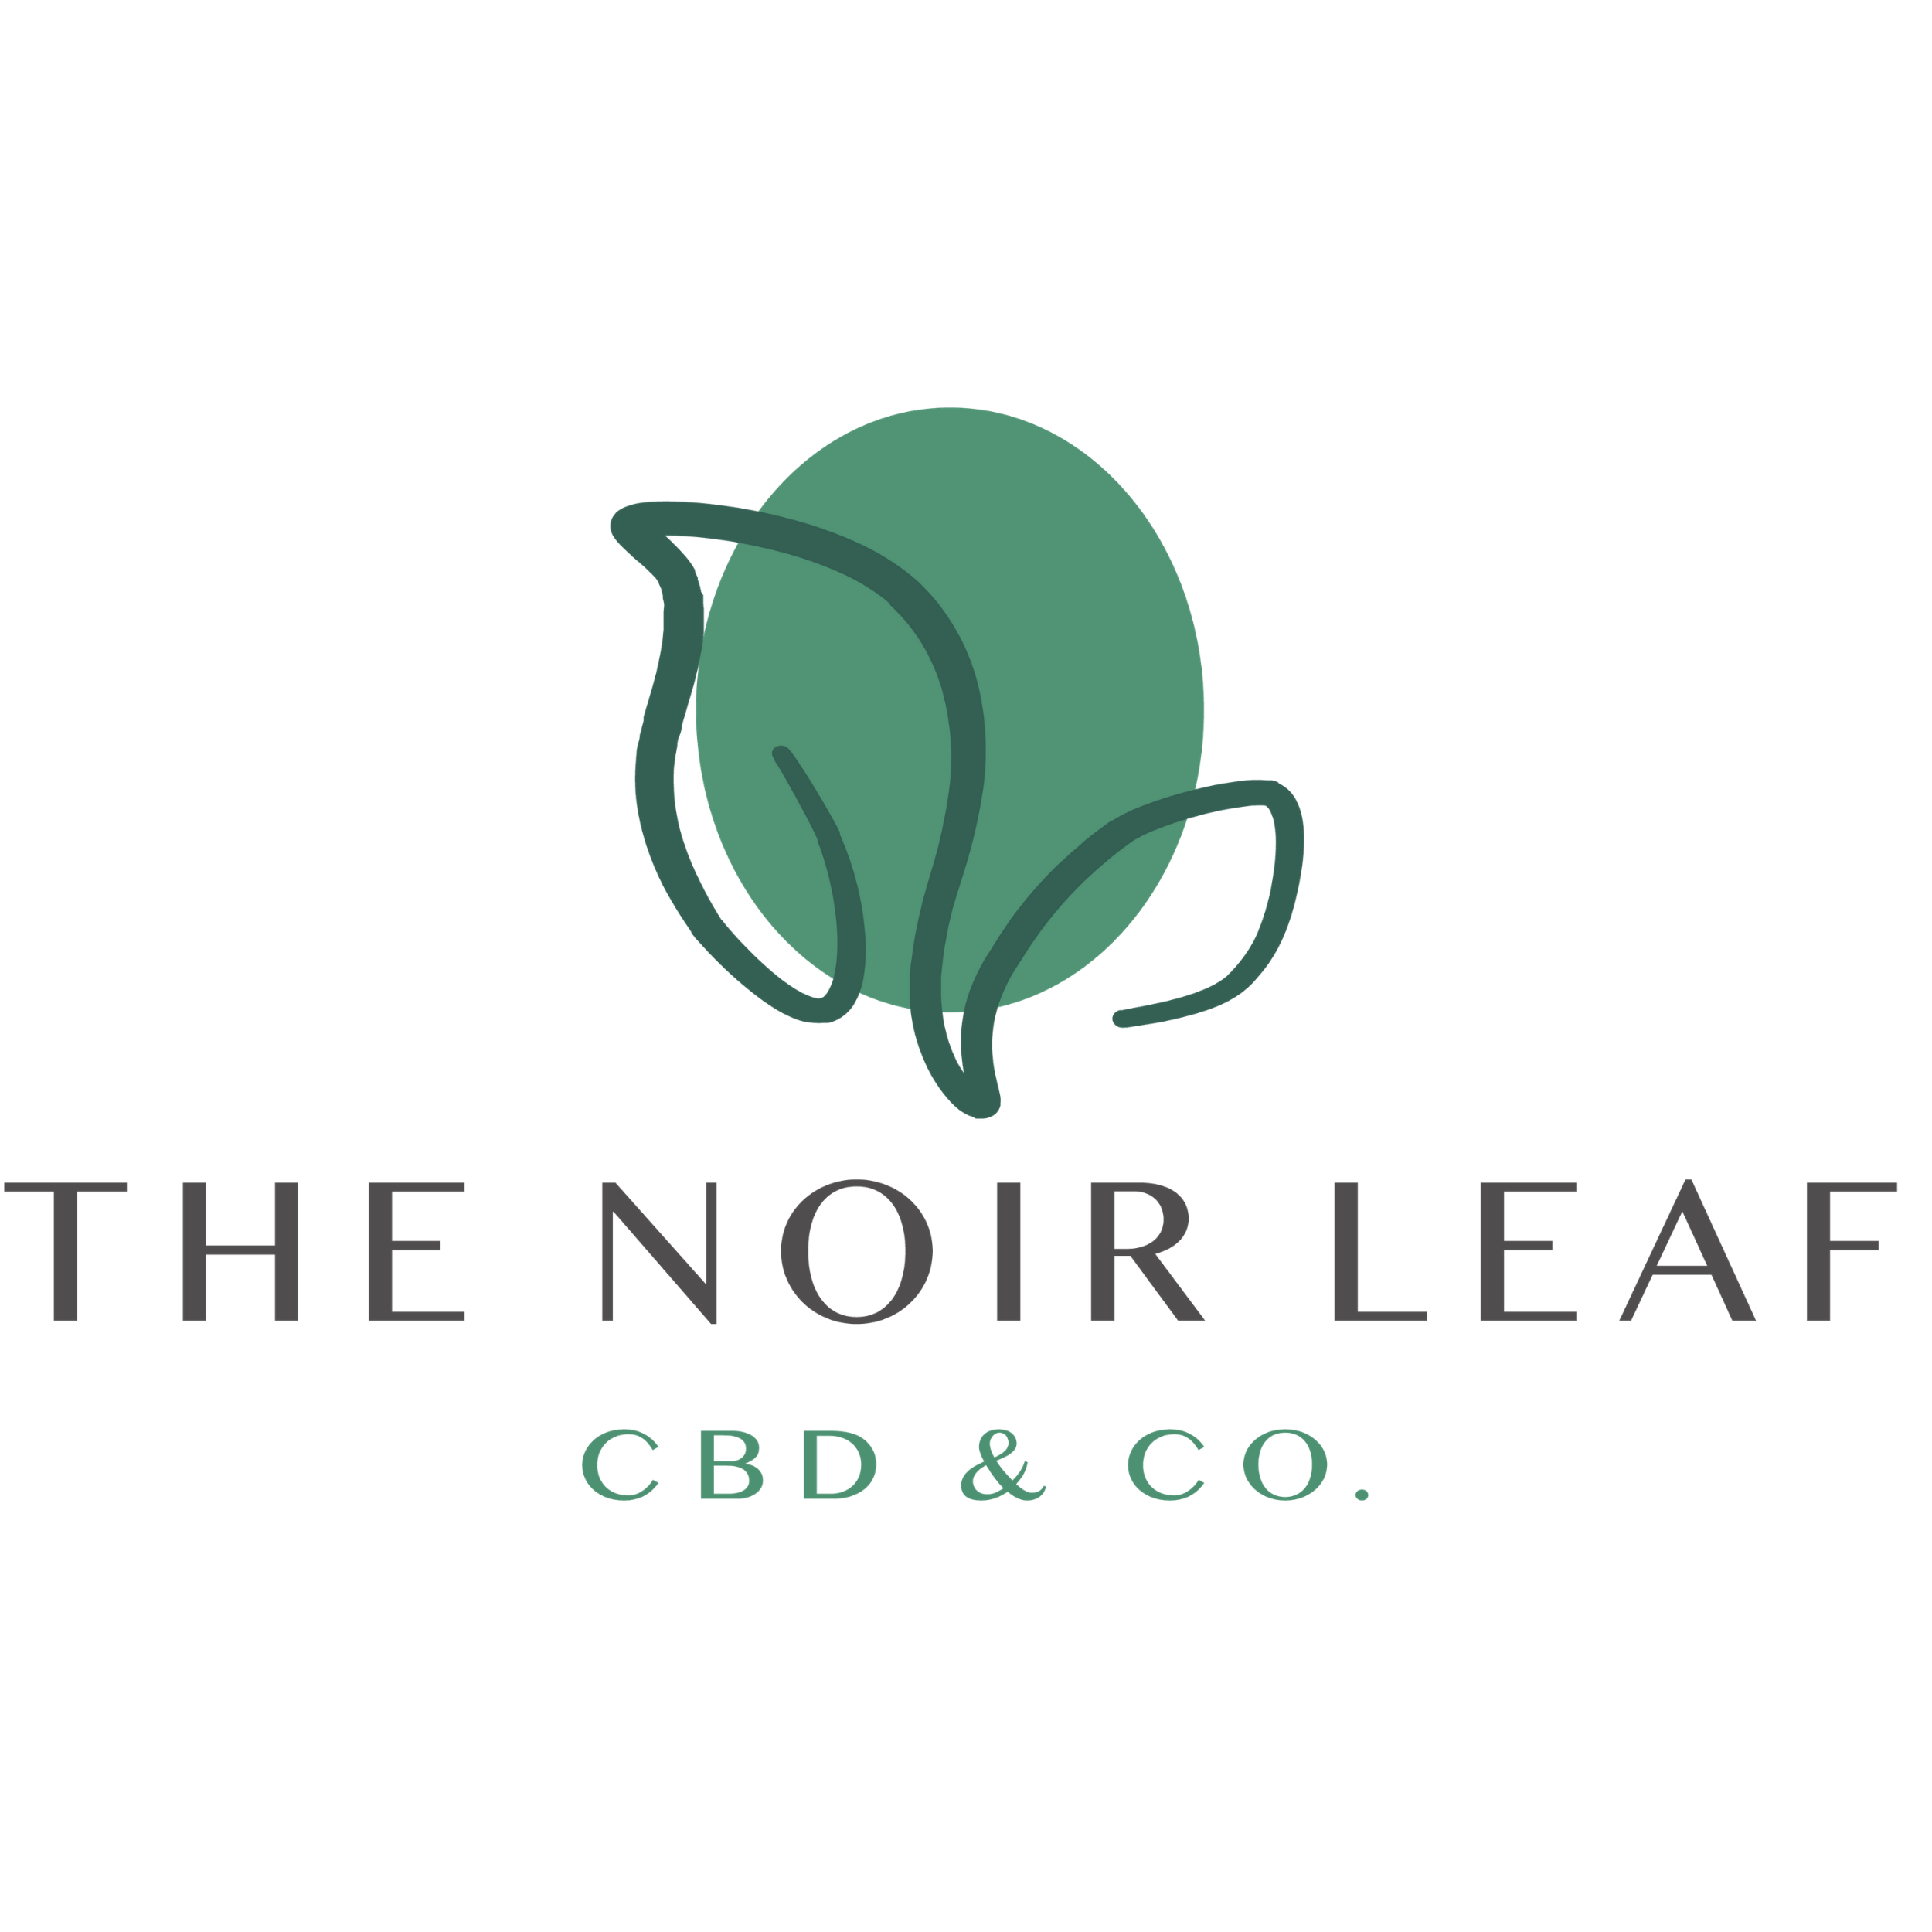 The Noir Leaf CBD